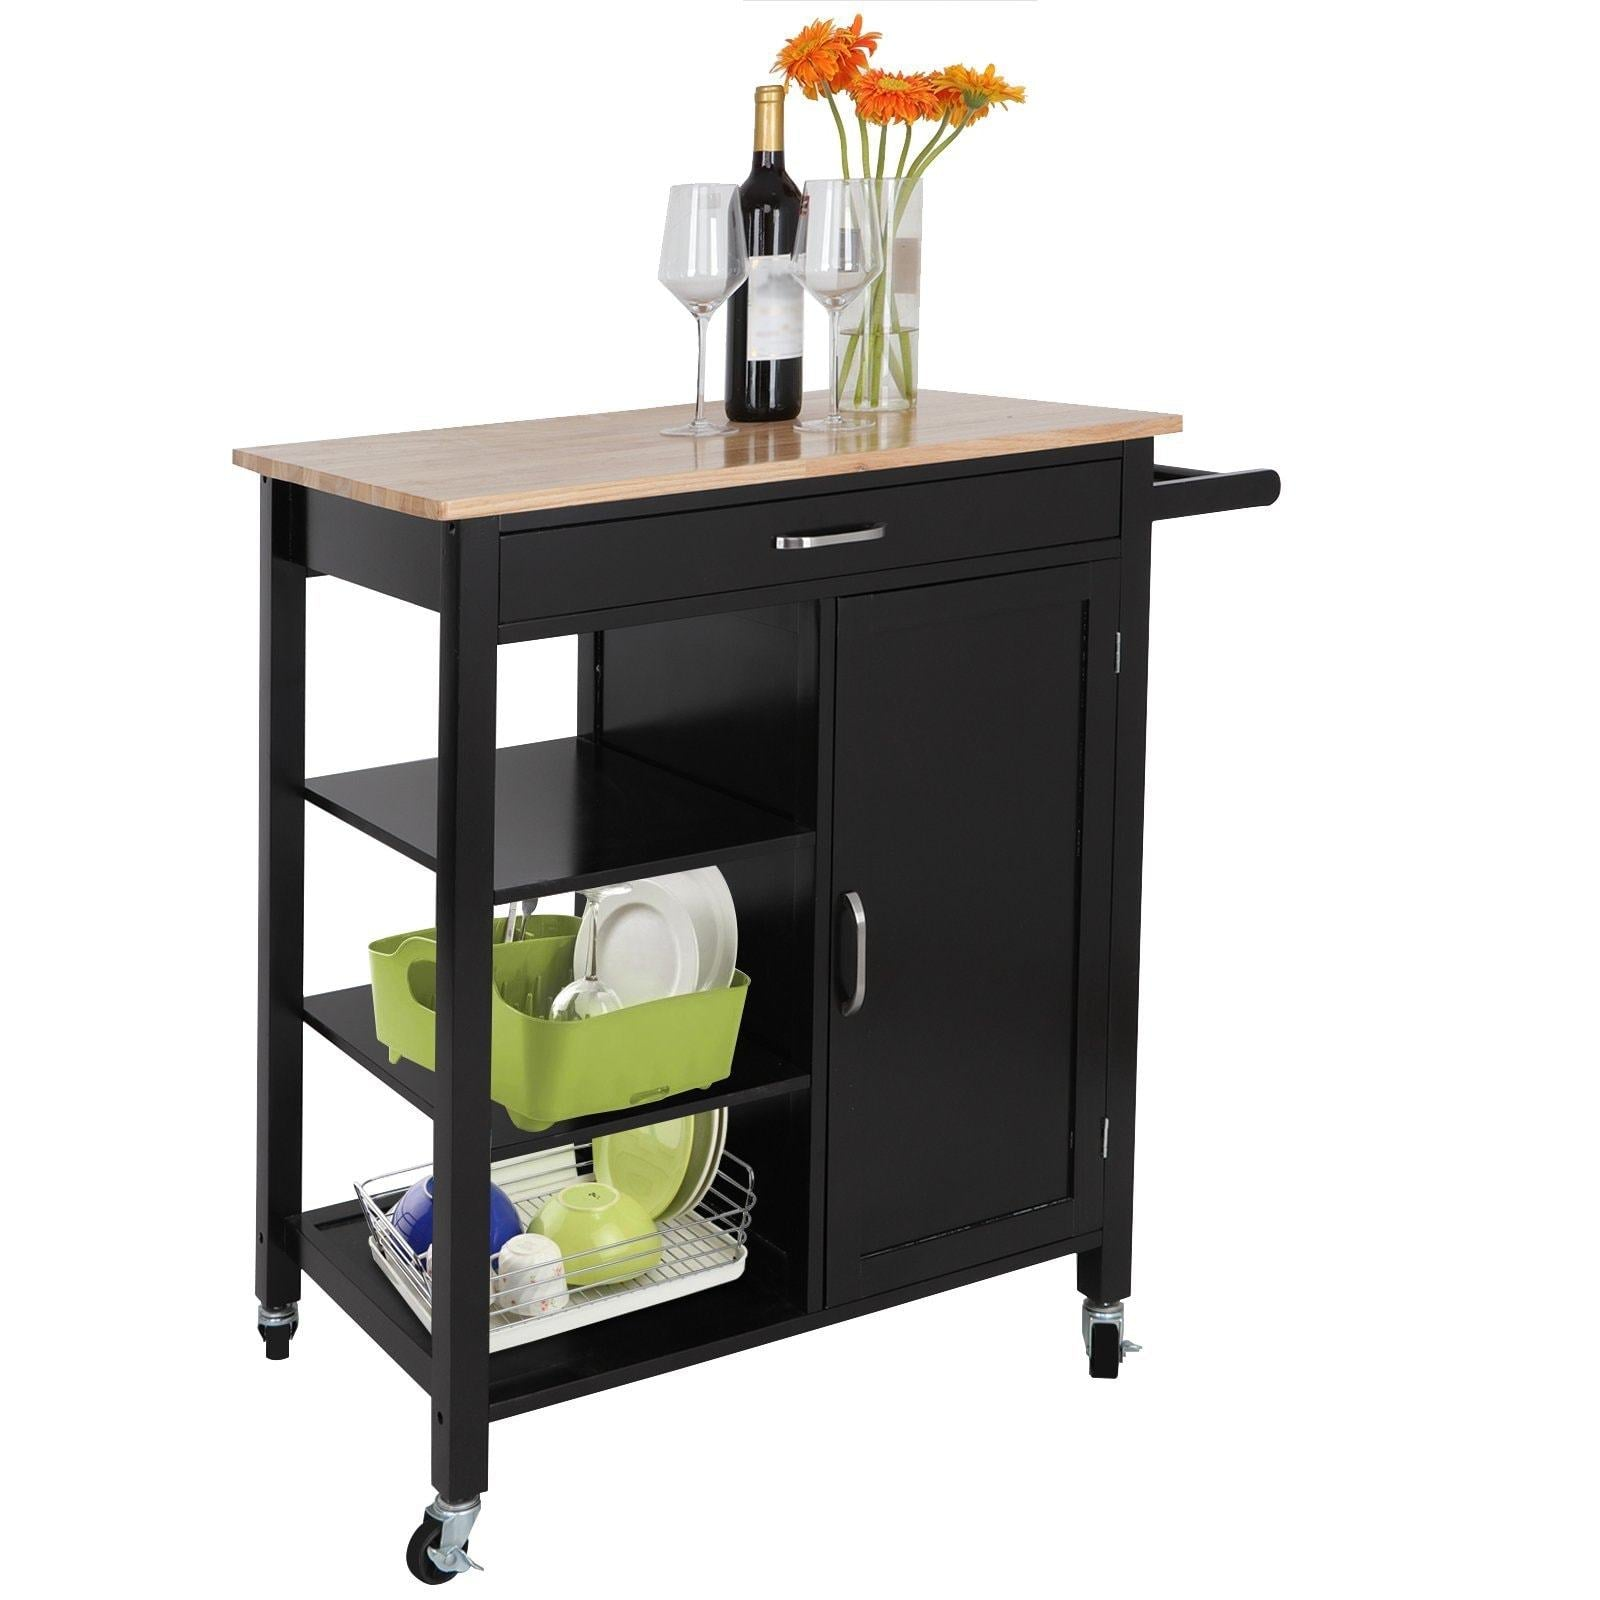 Great zenstyle 4 tier rolling kitchen island utility wood trolley serving cart kitchen storage cart w towel rack rubberwood butcher block countertop cabinet drawer shelves